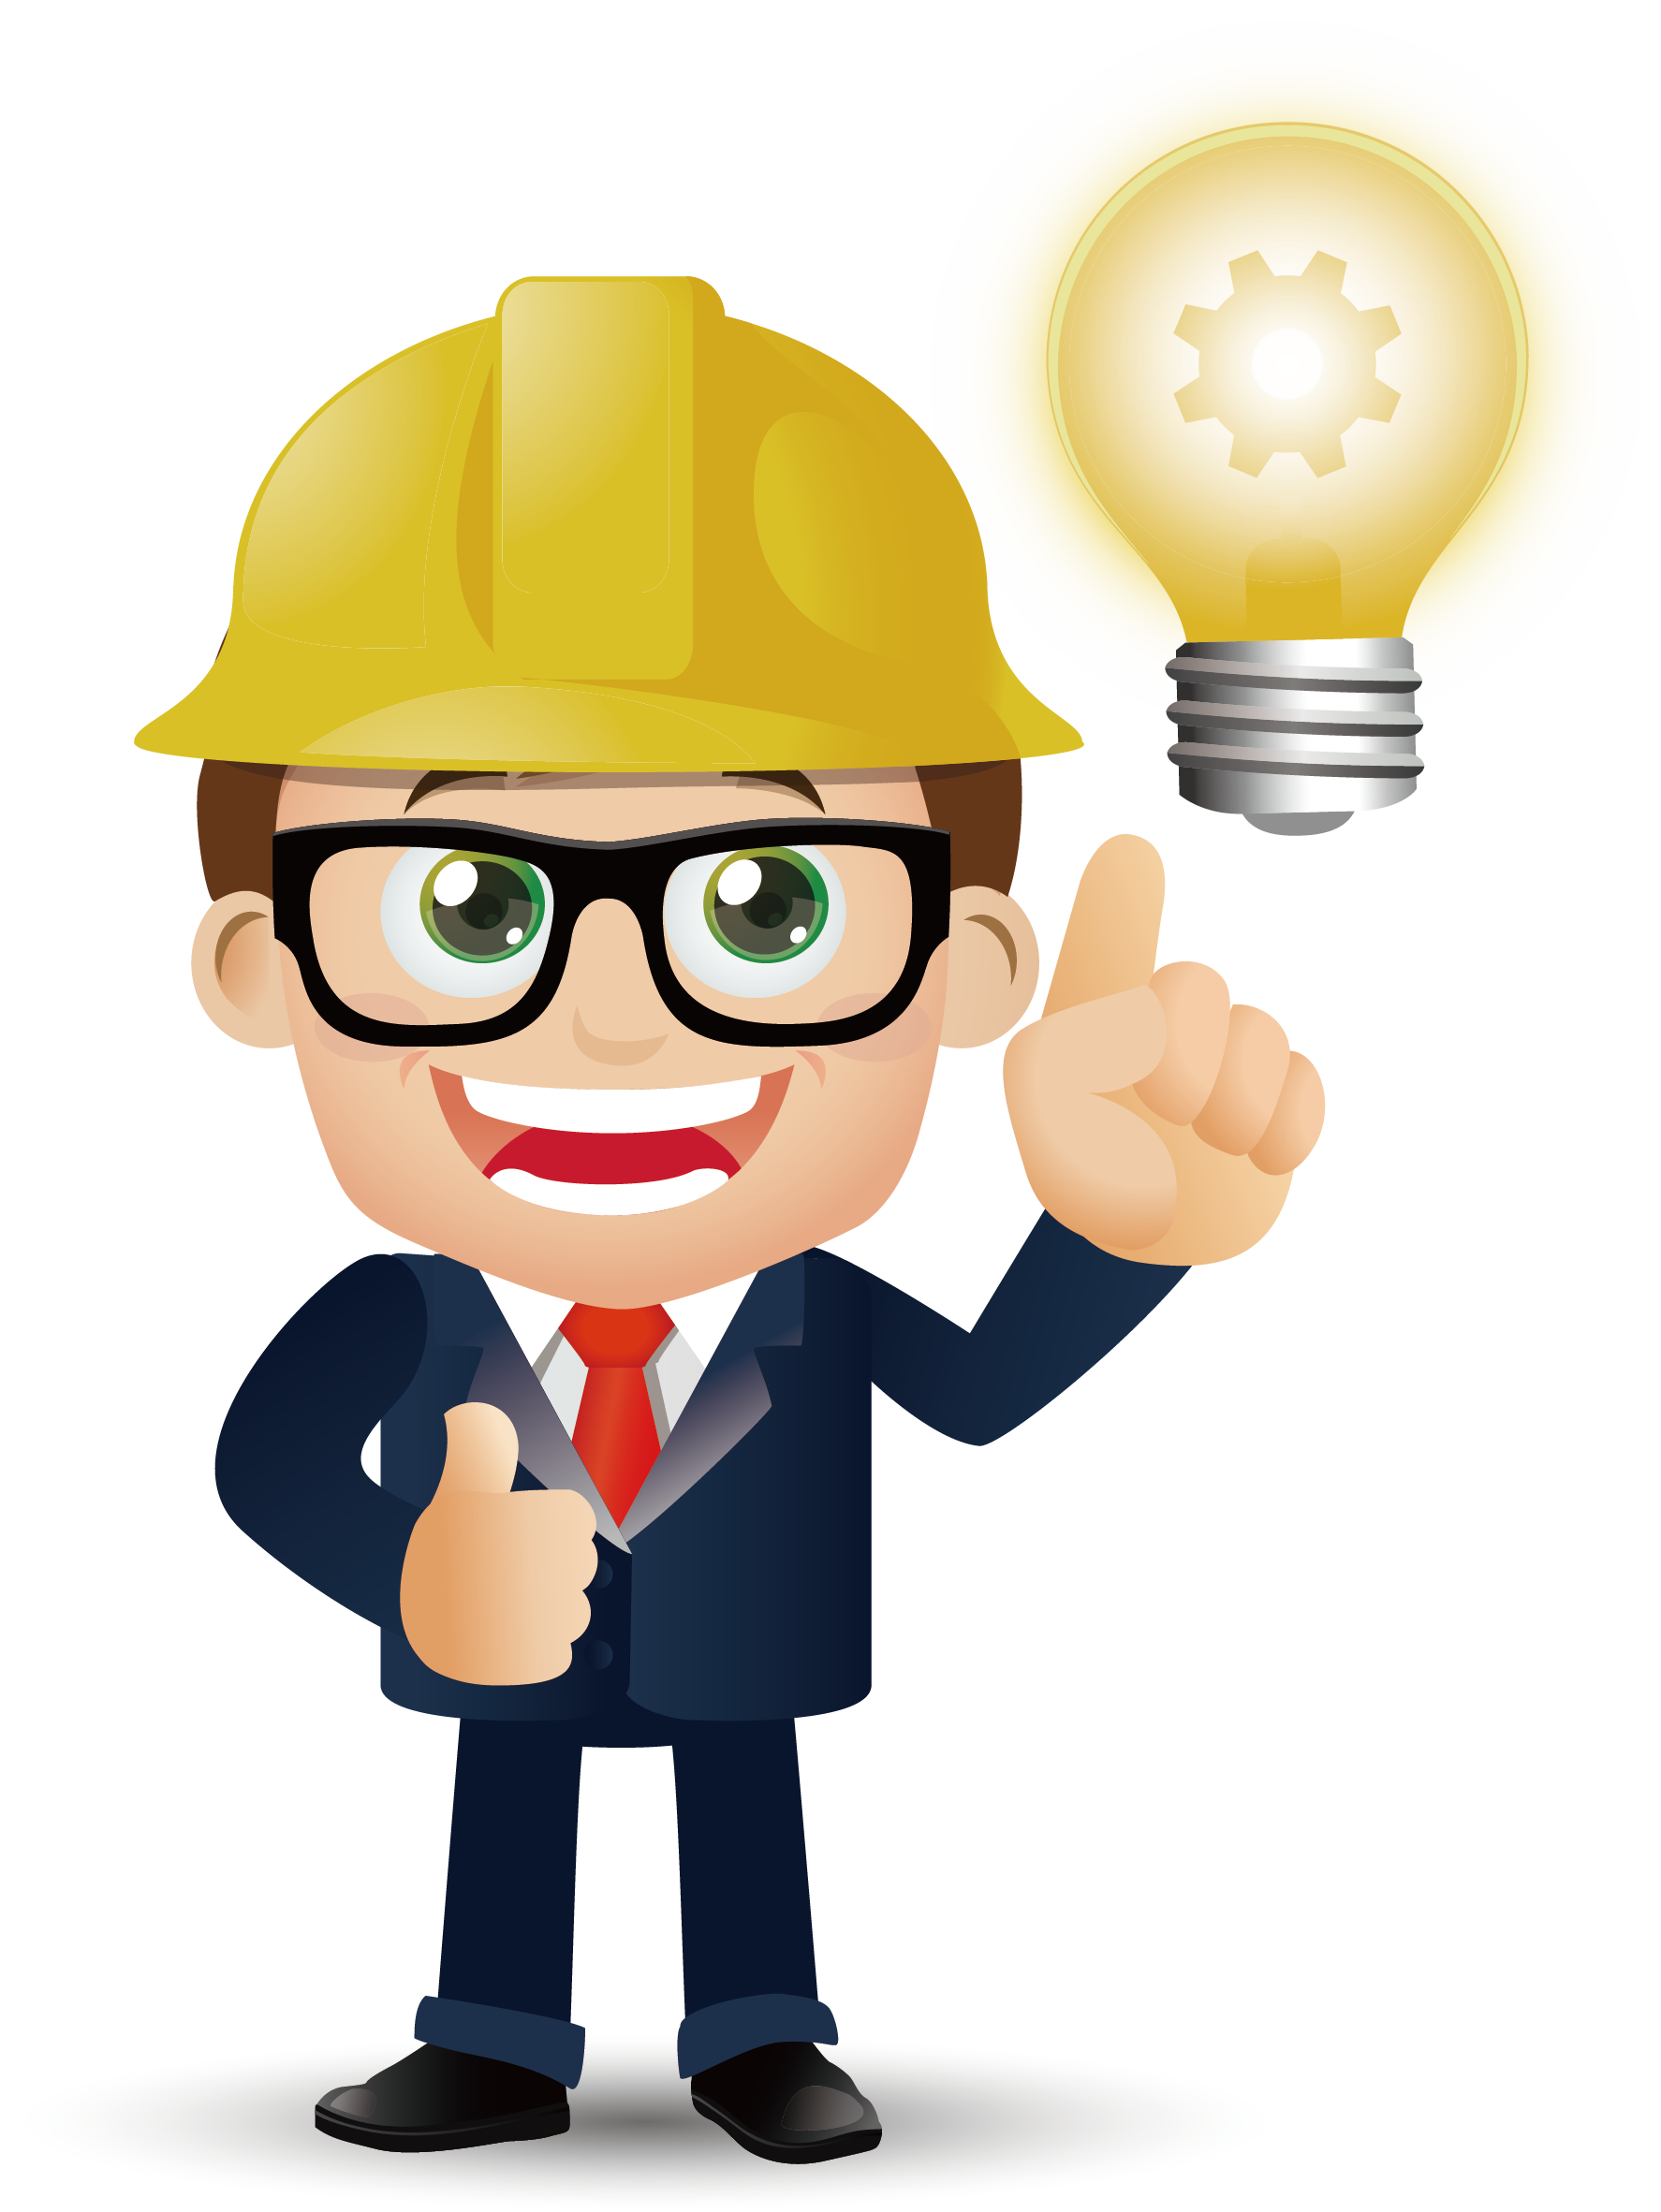 Material Vector Architecture Architectural Cartoon Engineer Vector Character Design Engineer Cartoon Smile Illustration